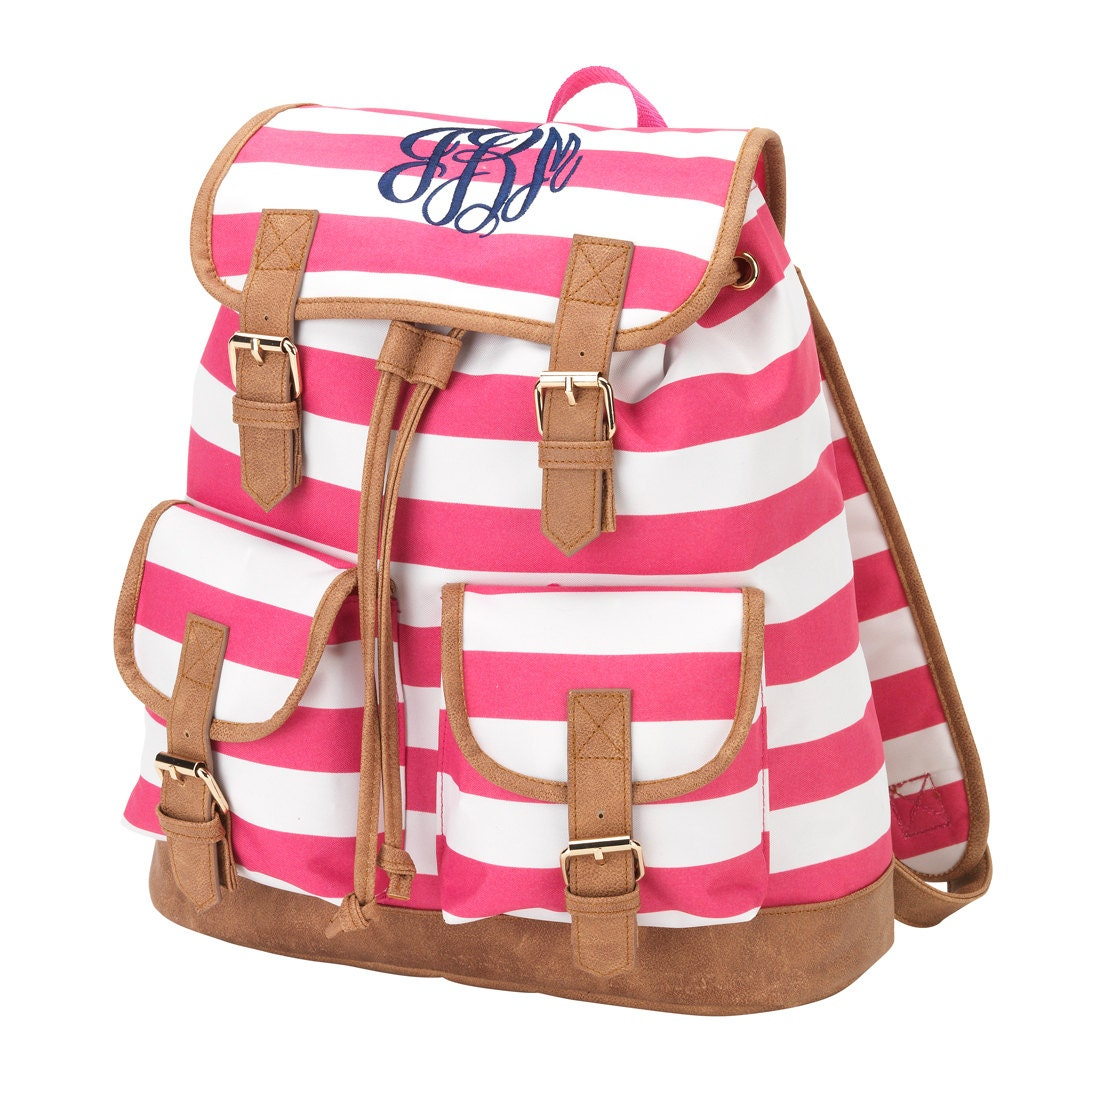 Monogrammed Campus Backpack in Hot Pink and White Striped